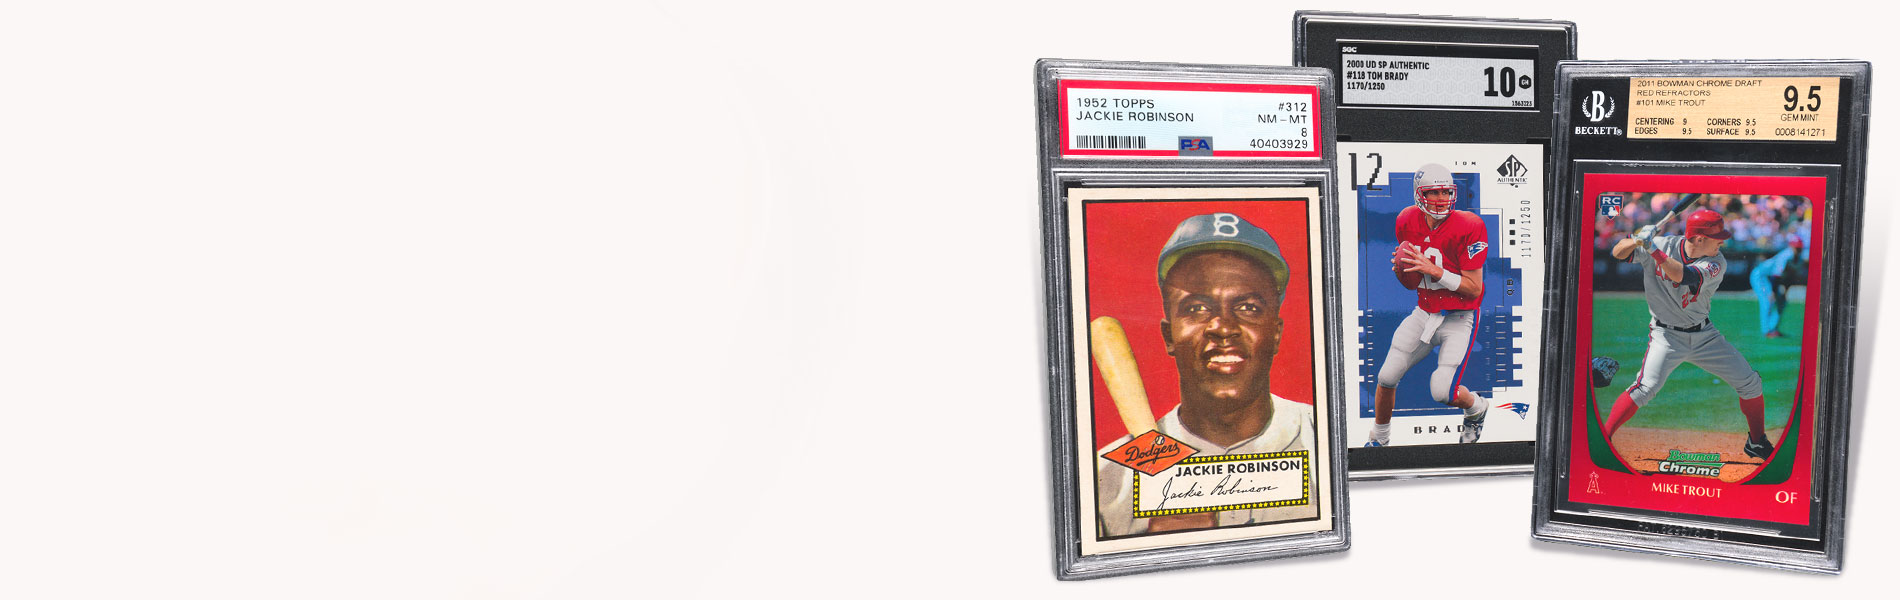 Rare Baseball Card Auction